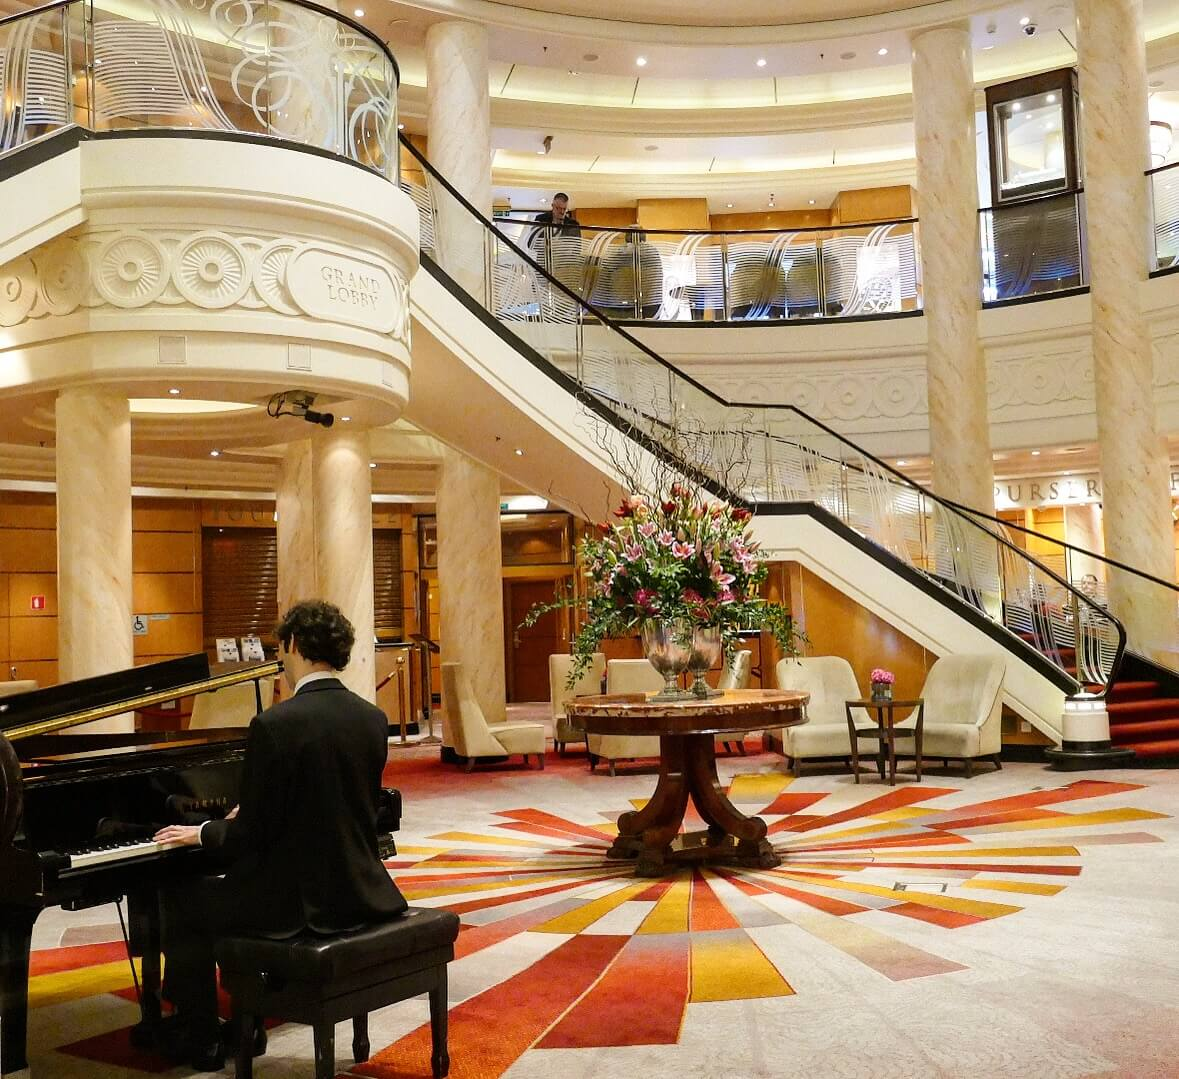 Offshore weekend breaks in the UK, light and luxury interior of a cruise ship lounge with piano player